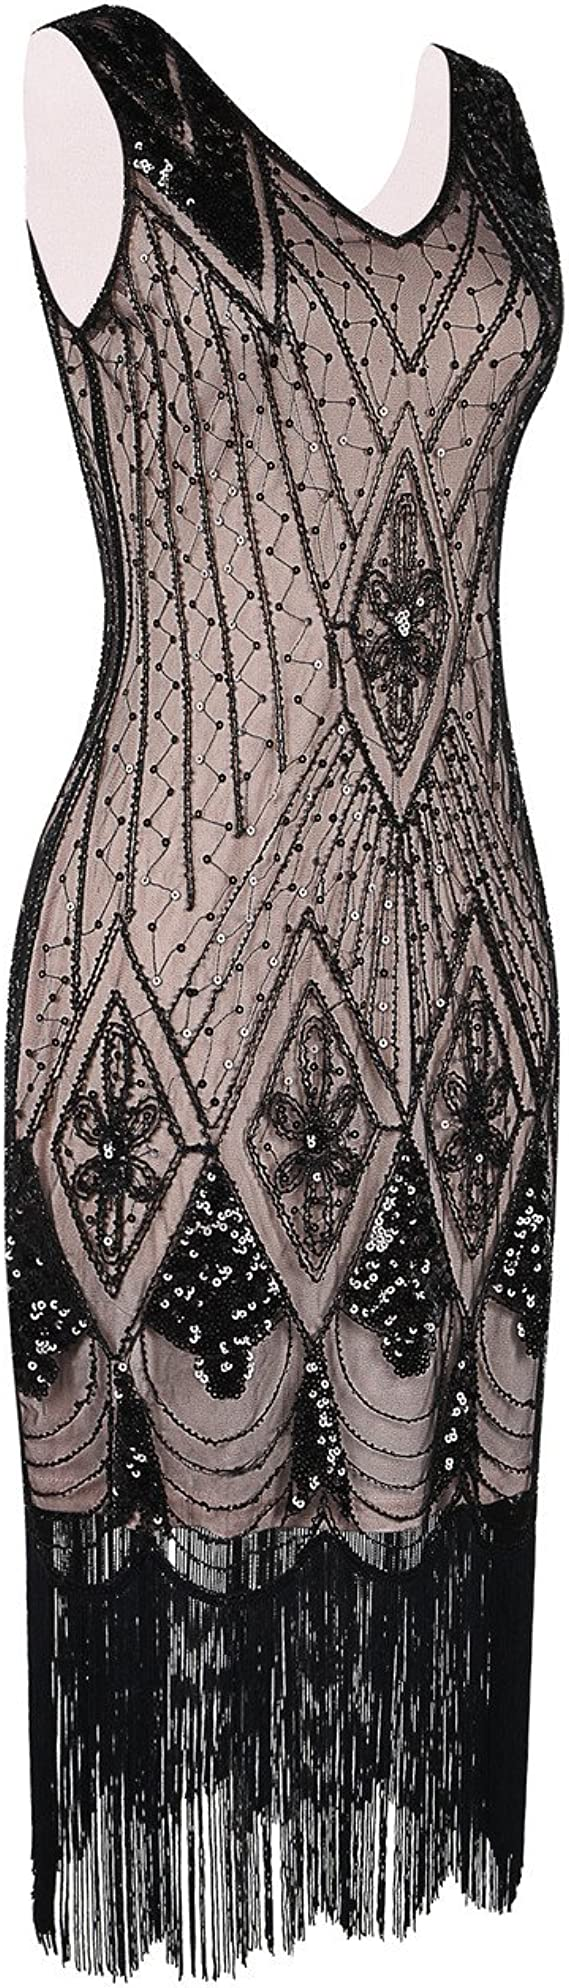 1920s Plus Size Flapper Dresses, Gatsby Dresses, Flapper Costumes PrettyGuide Women 1920s Gatsby Cocktail Sequin Art Deco Flapper Dress $44.99 AT vintagedancer.com